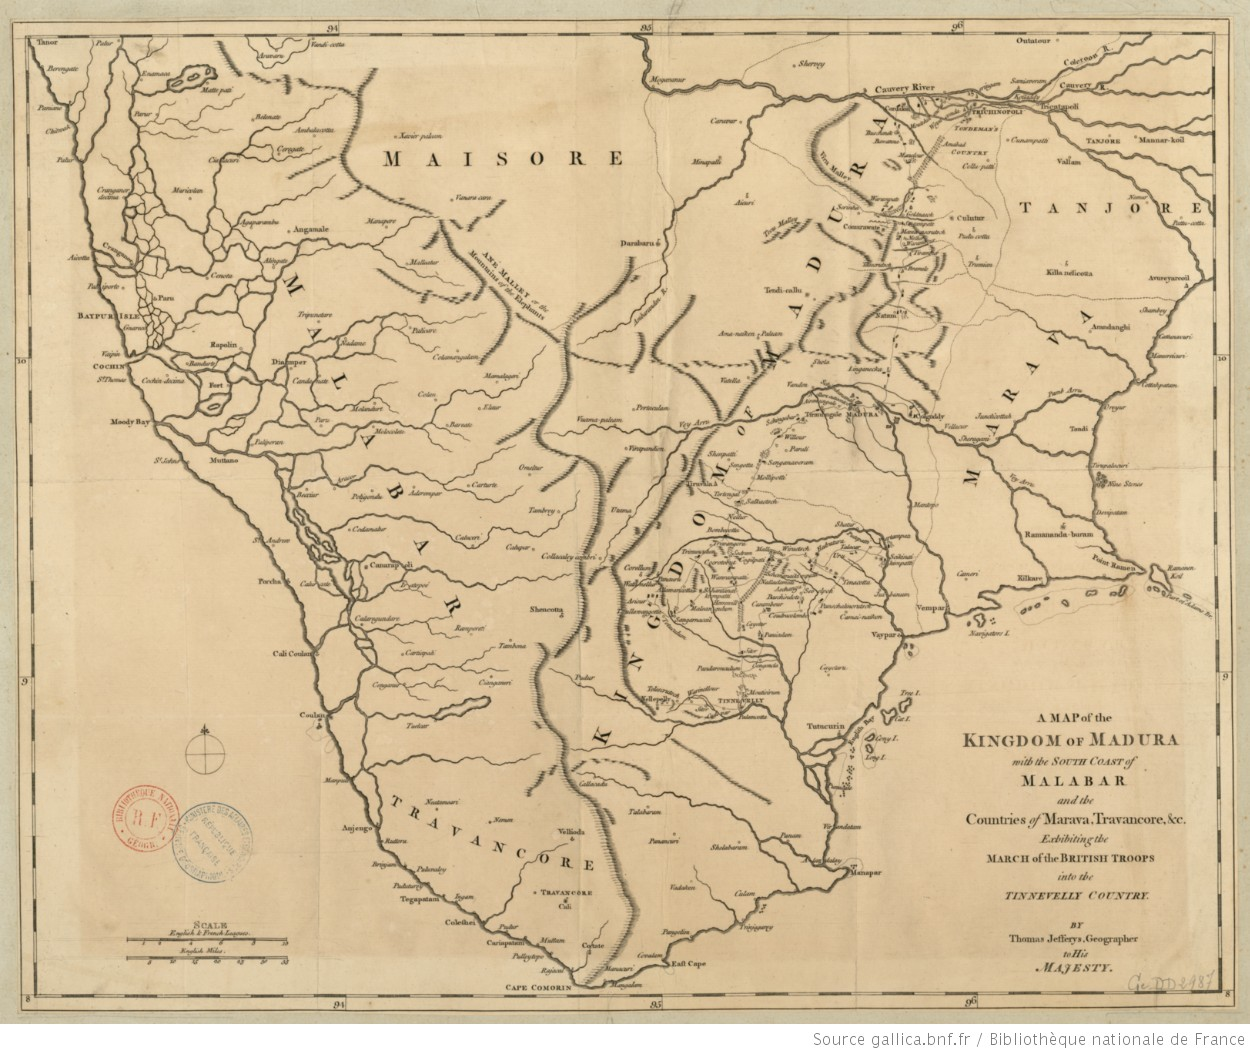 Map South Of France Coast.A Map Of The Kingdom Of Madura With The South Coast Of Malabar And